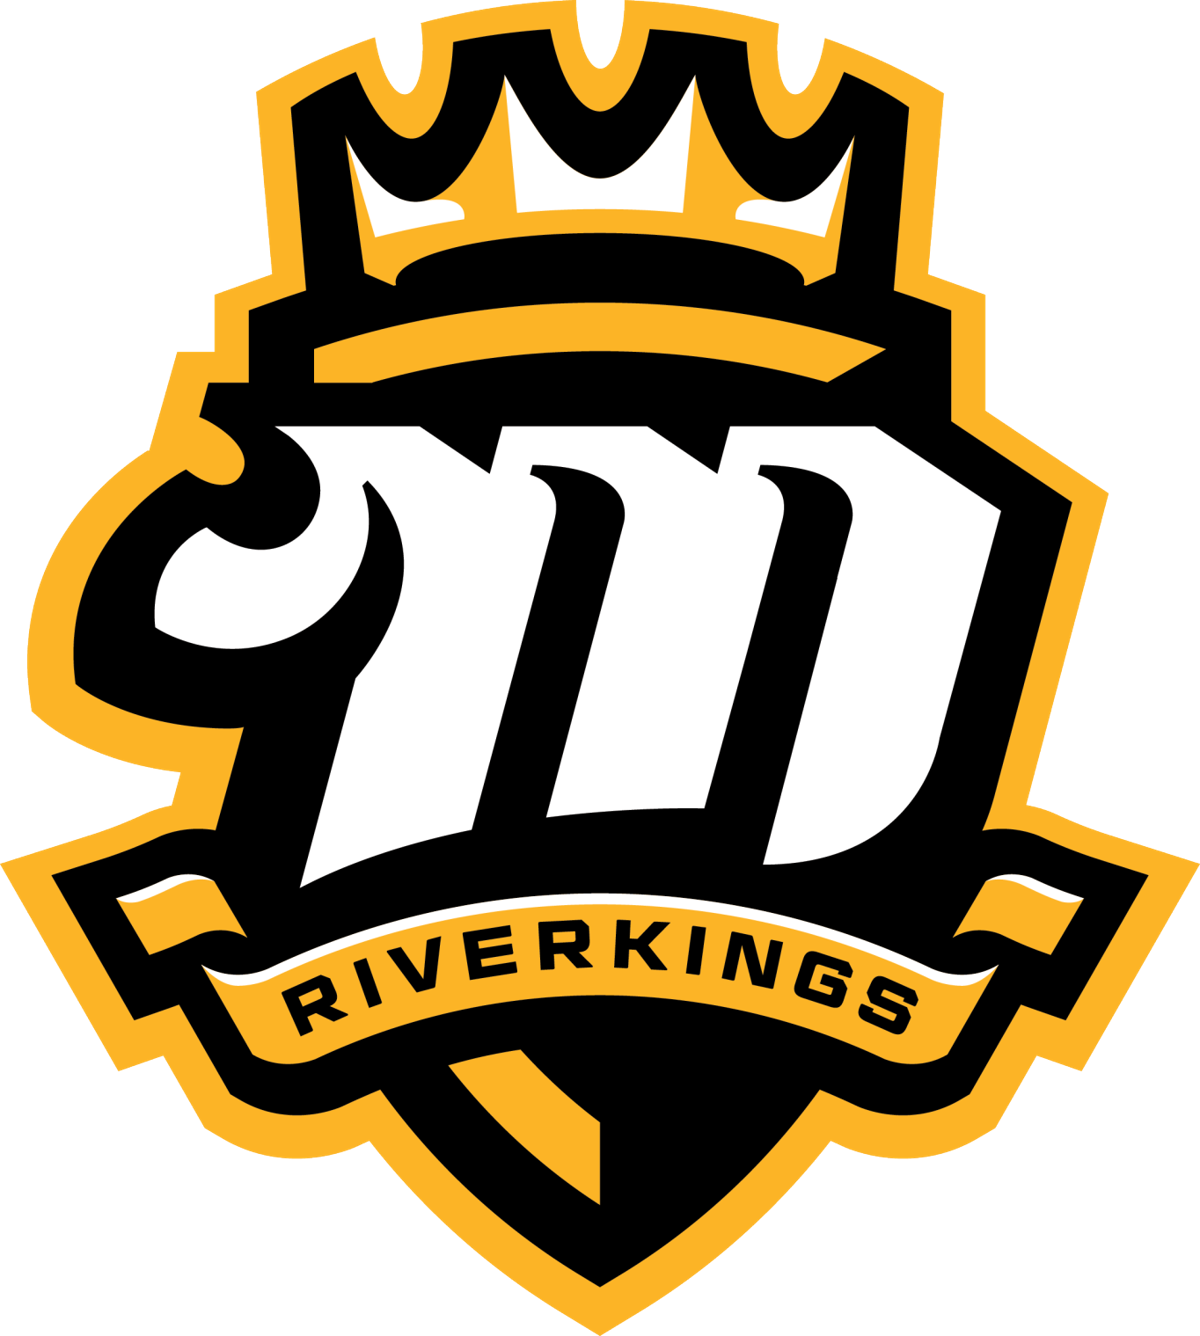 Riverkings logo.png